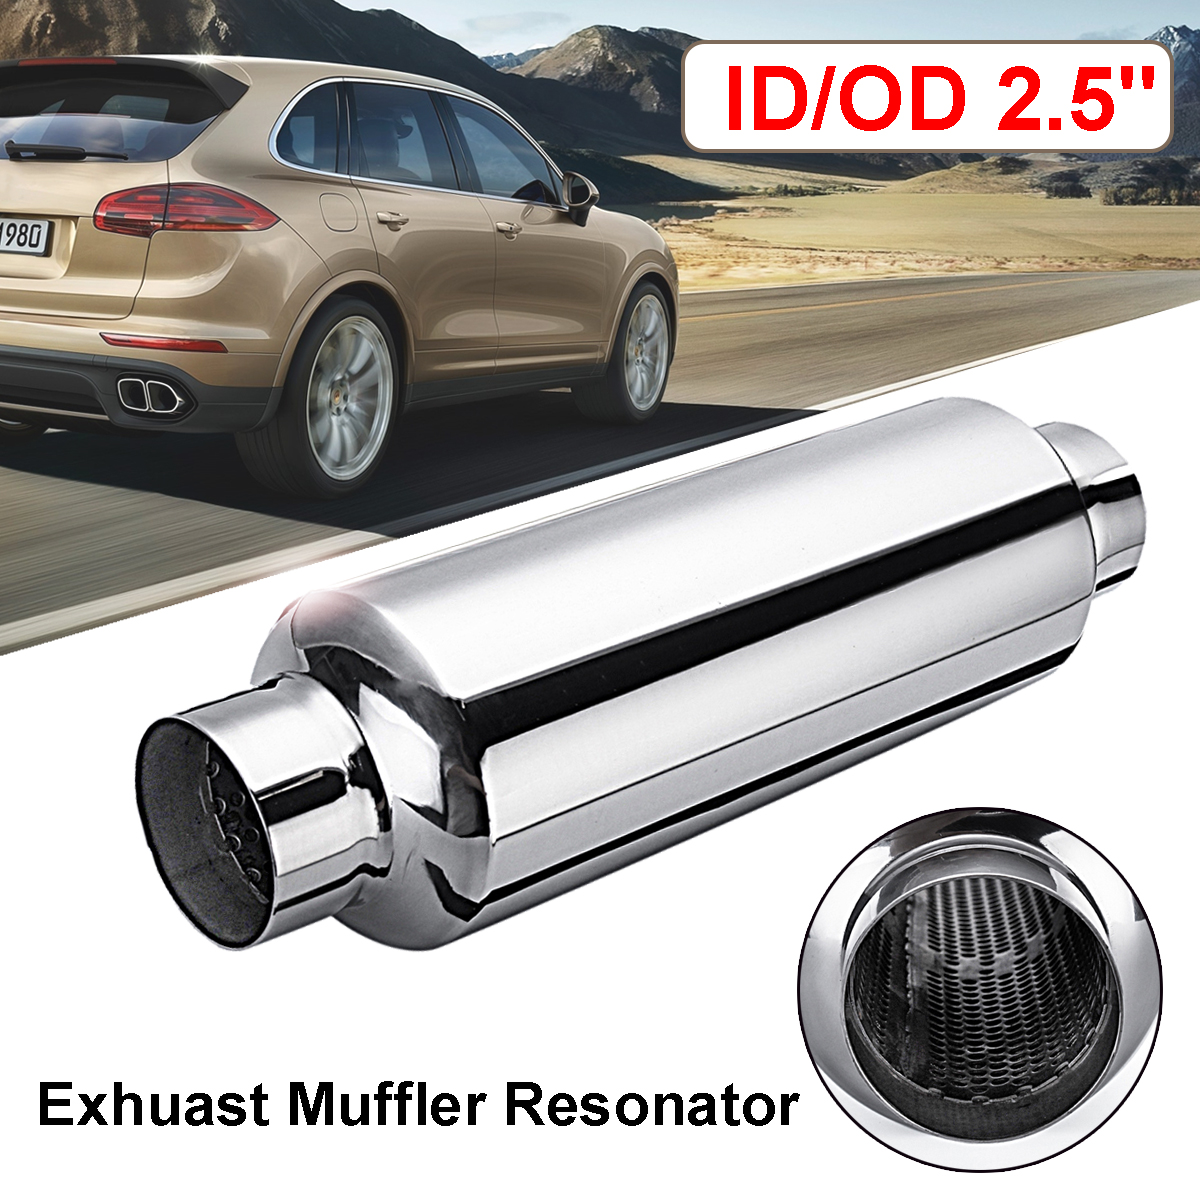 Universal Stainless Steel Car Resonator Exhaust Muffler 2.5